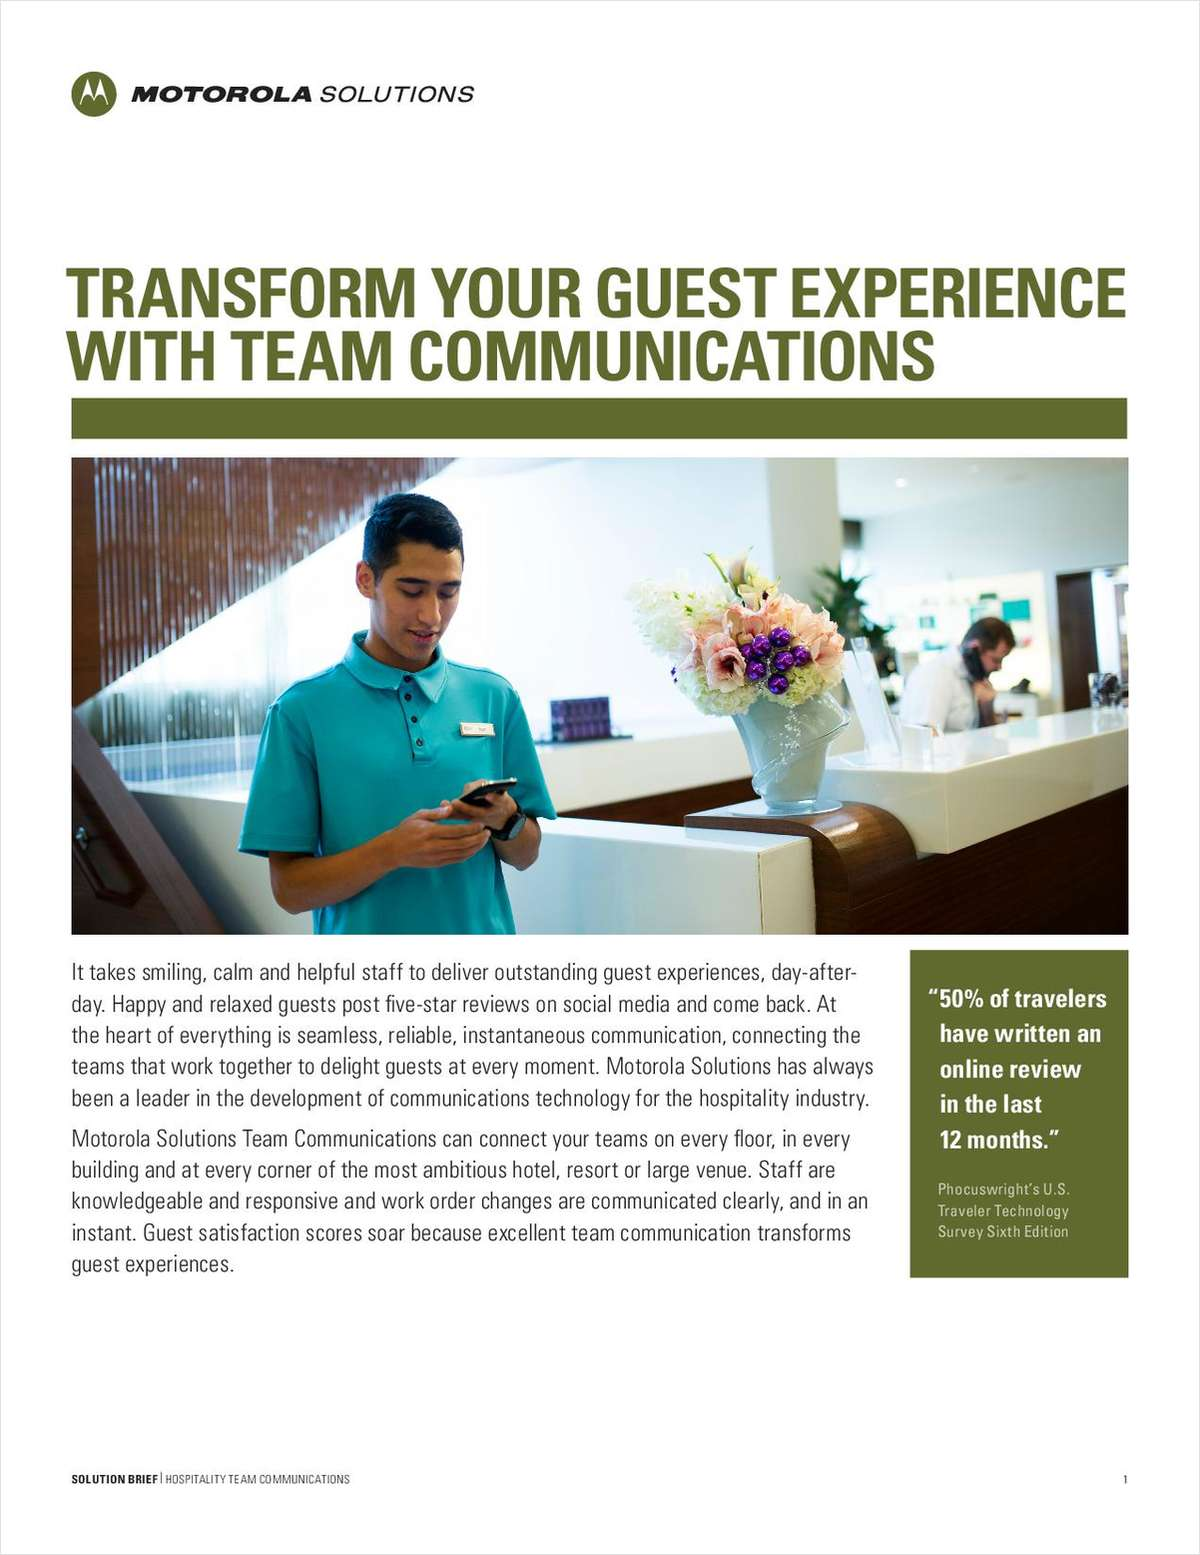 Transform Your Guest Experience With Team Communications